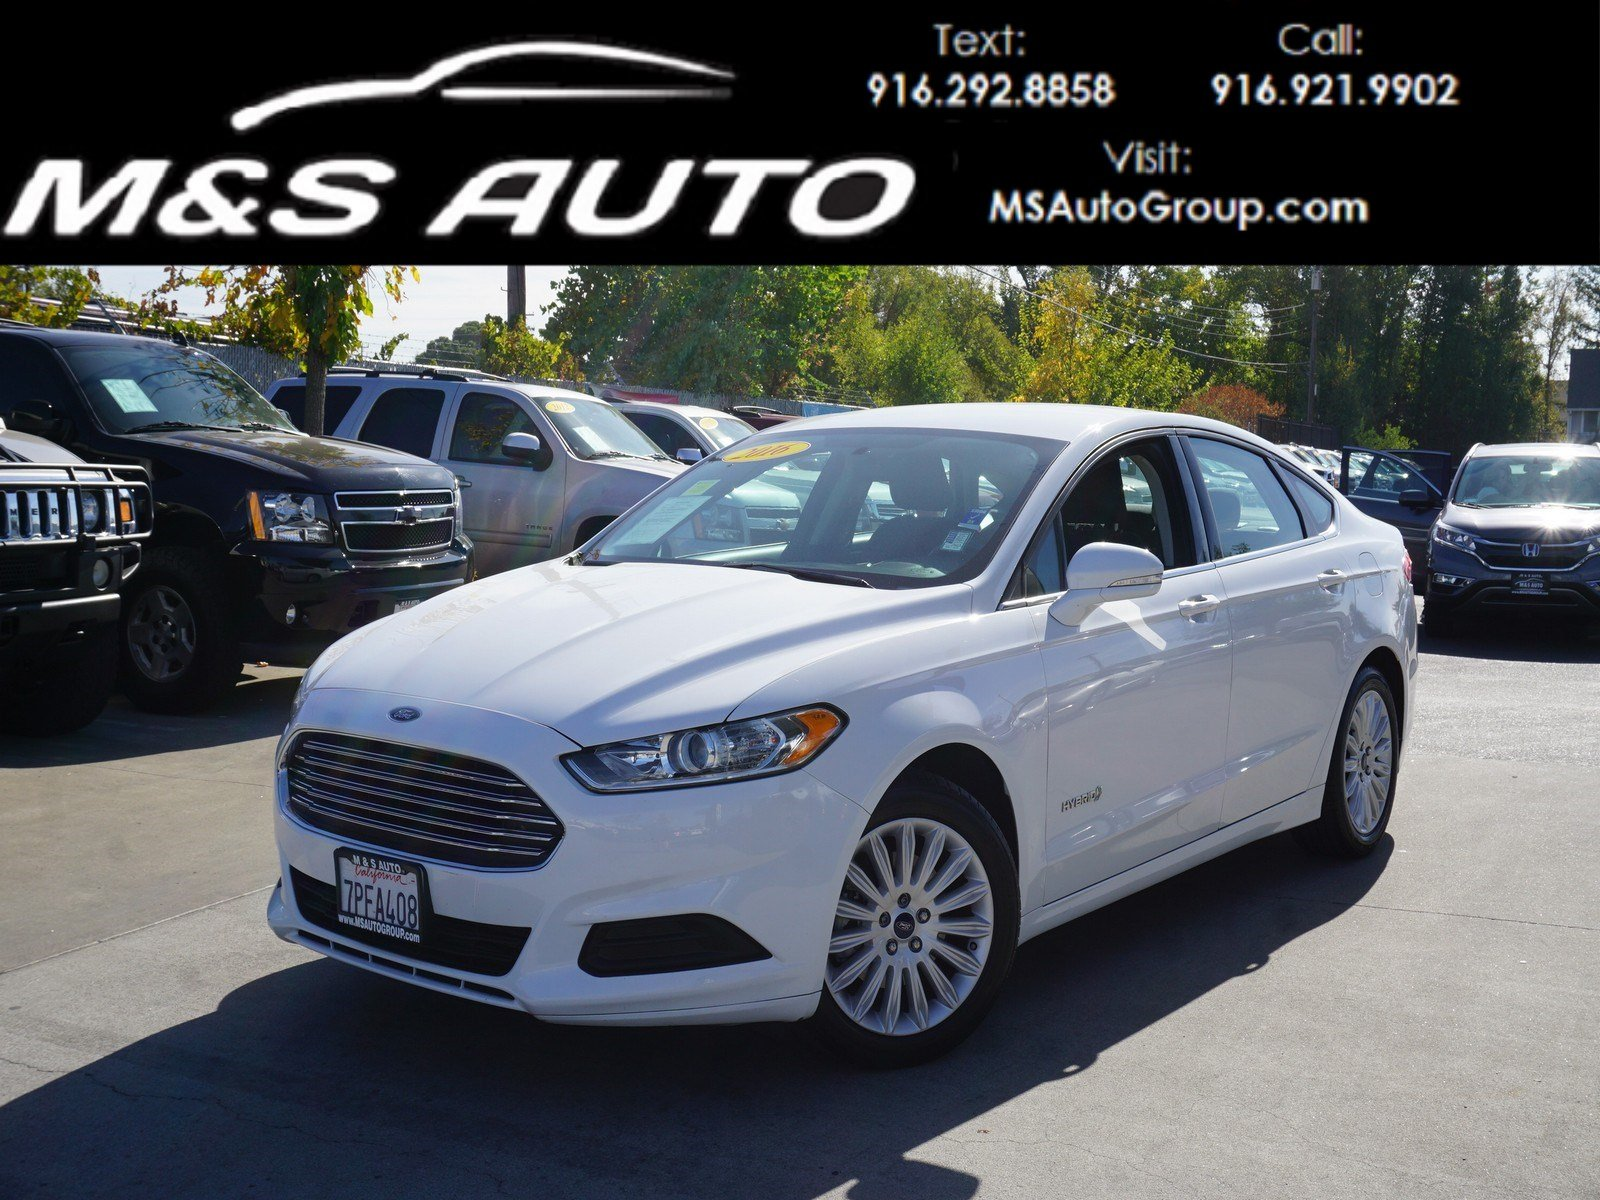 Pre Owned 2016 Ford Fusion SE Hybrid 4dr Car in Sacramento A